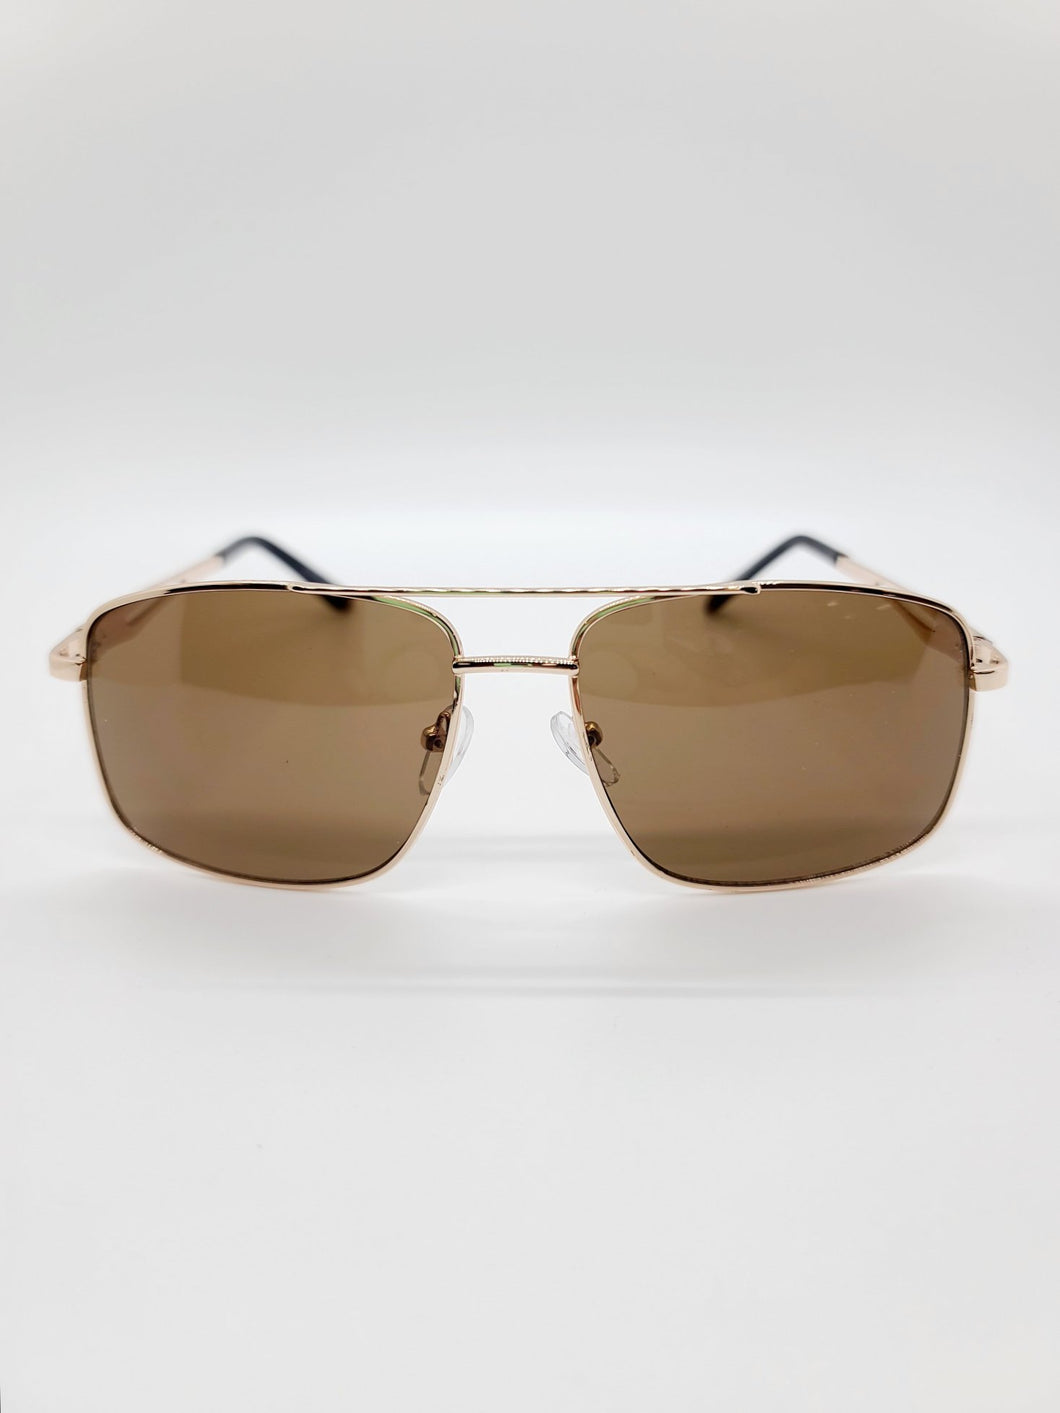 brown lens square golden wire frame aviator style sunglasses